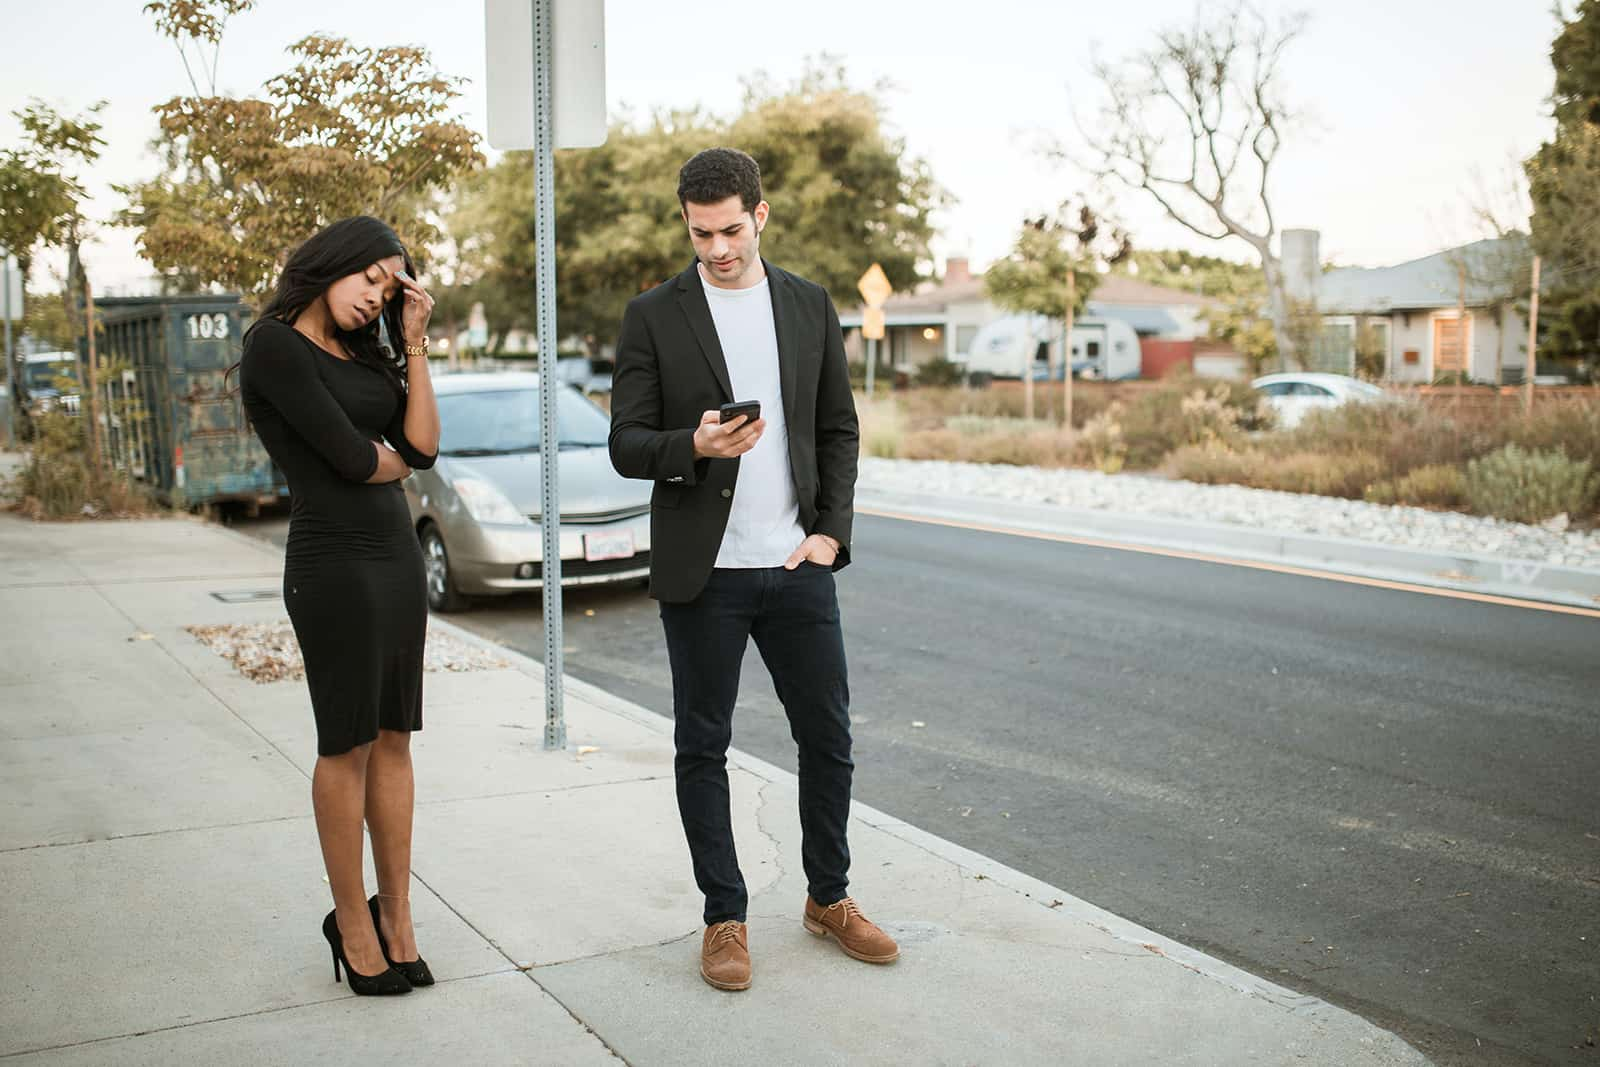 a jealous man checking smartphone of his girlfriend while standing together on the sidewalk